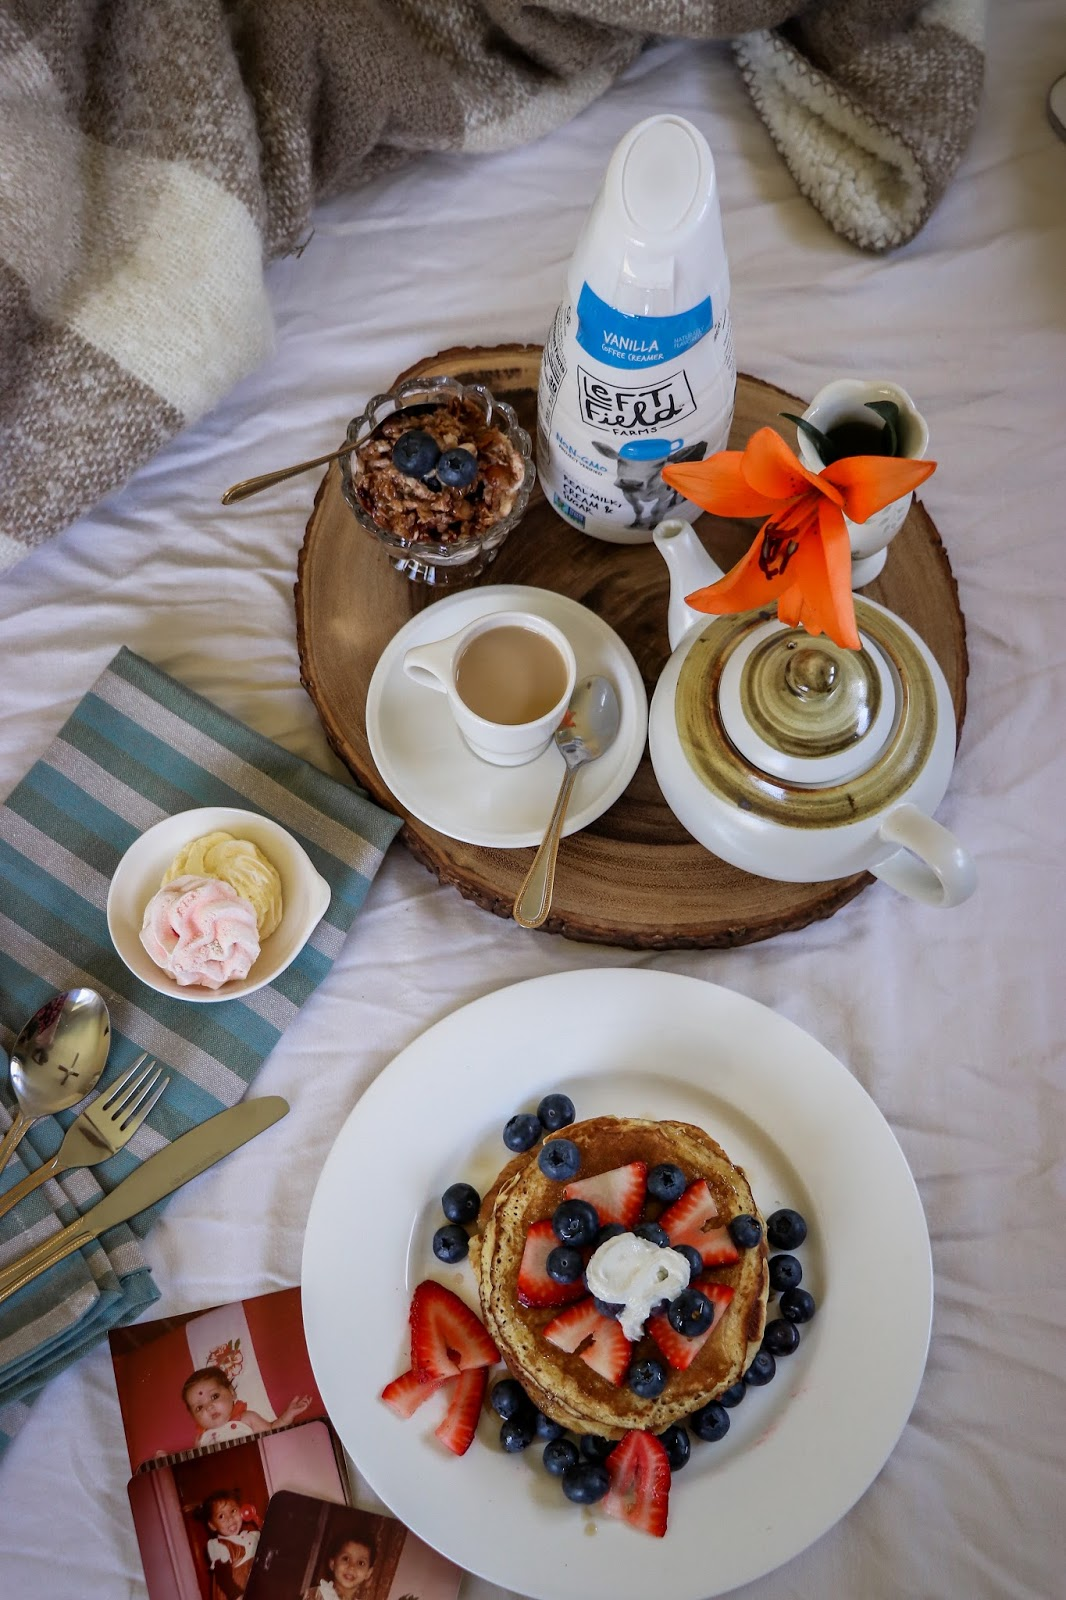 mothers day breakfast in bed, vanilla pancakes made with lefty field farms creamer, pancake recipe, mothers day gift guide, mothers day celebration, myriad musings